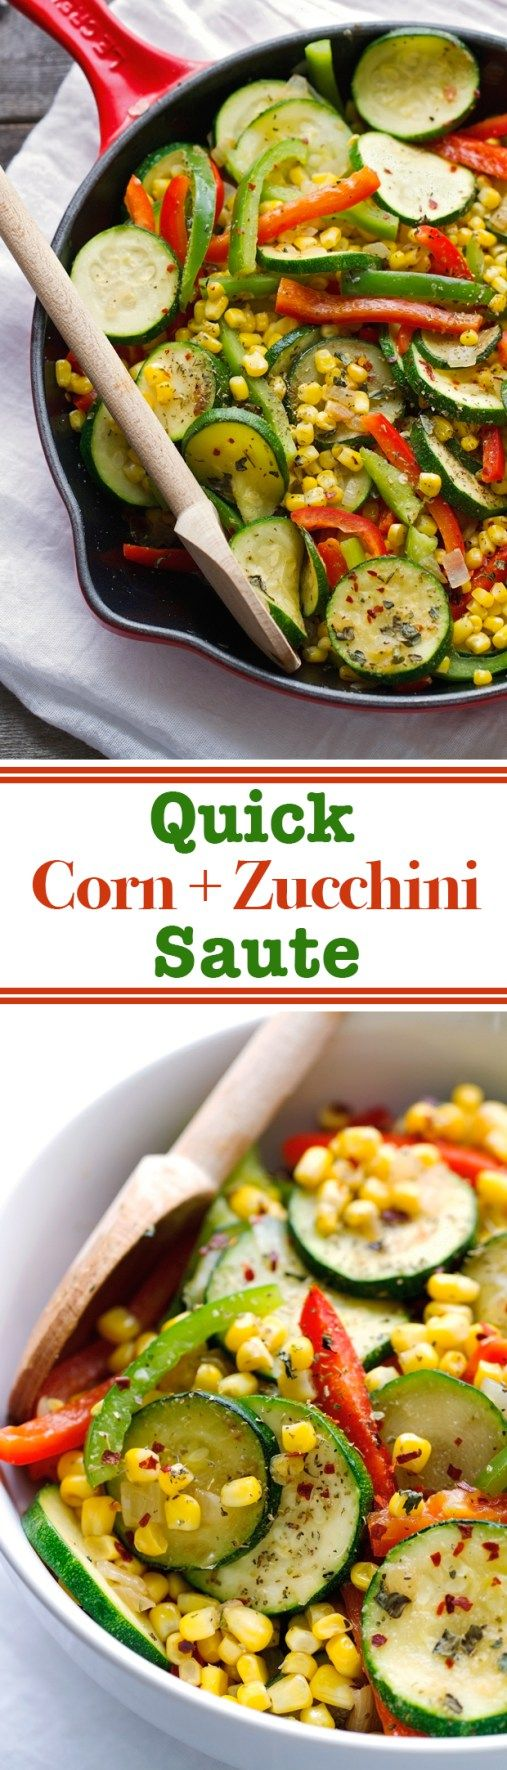 Corn and Zucchini Saute | Recipe | Zucchini, Meals and Dishes